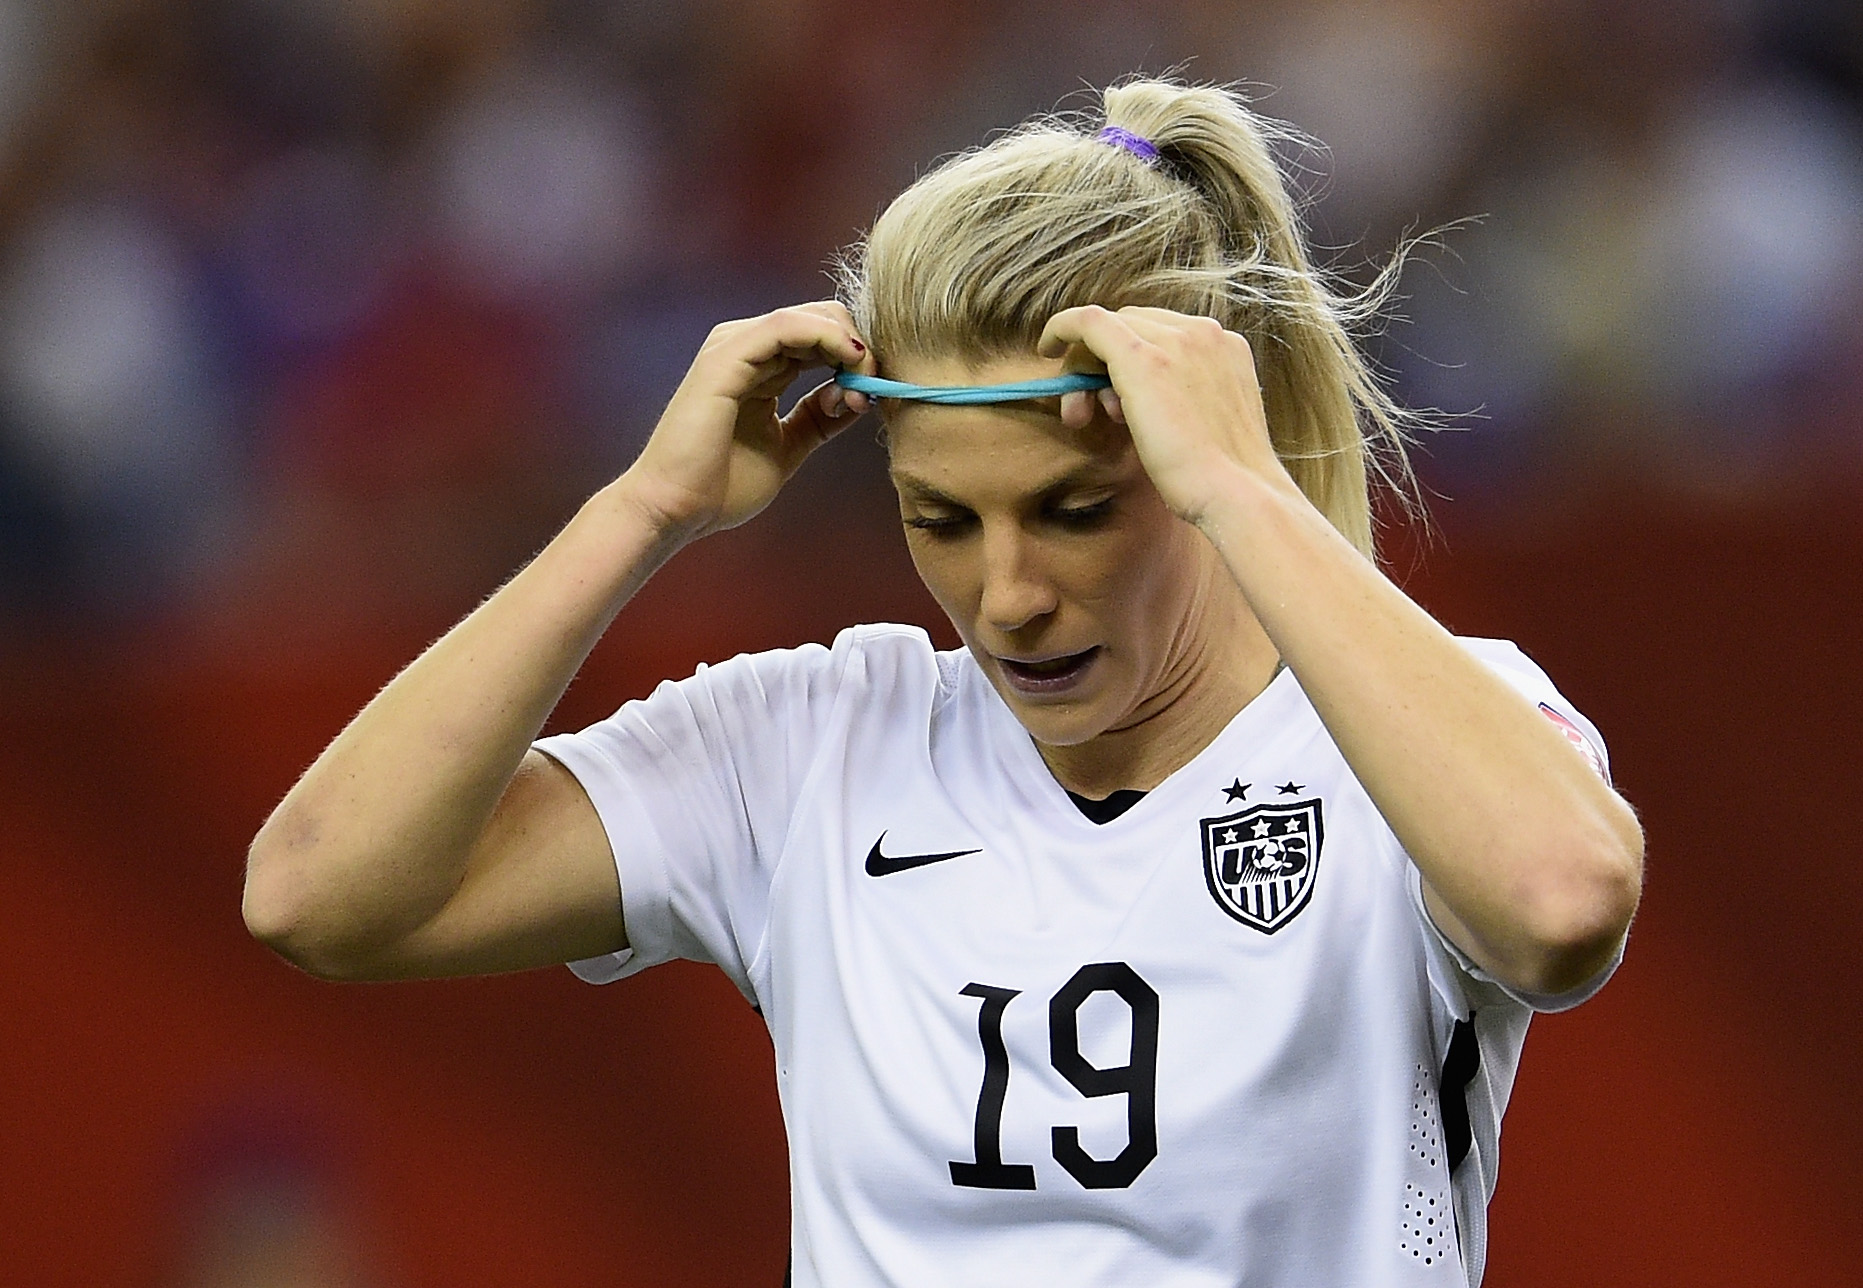 Minute Key Near Me >> The Evolution of Julie Ertz - Hot Time In Old Town